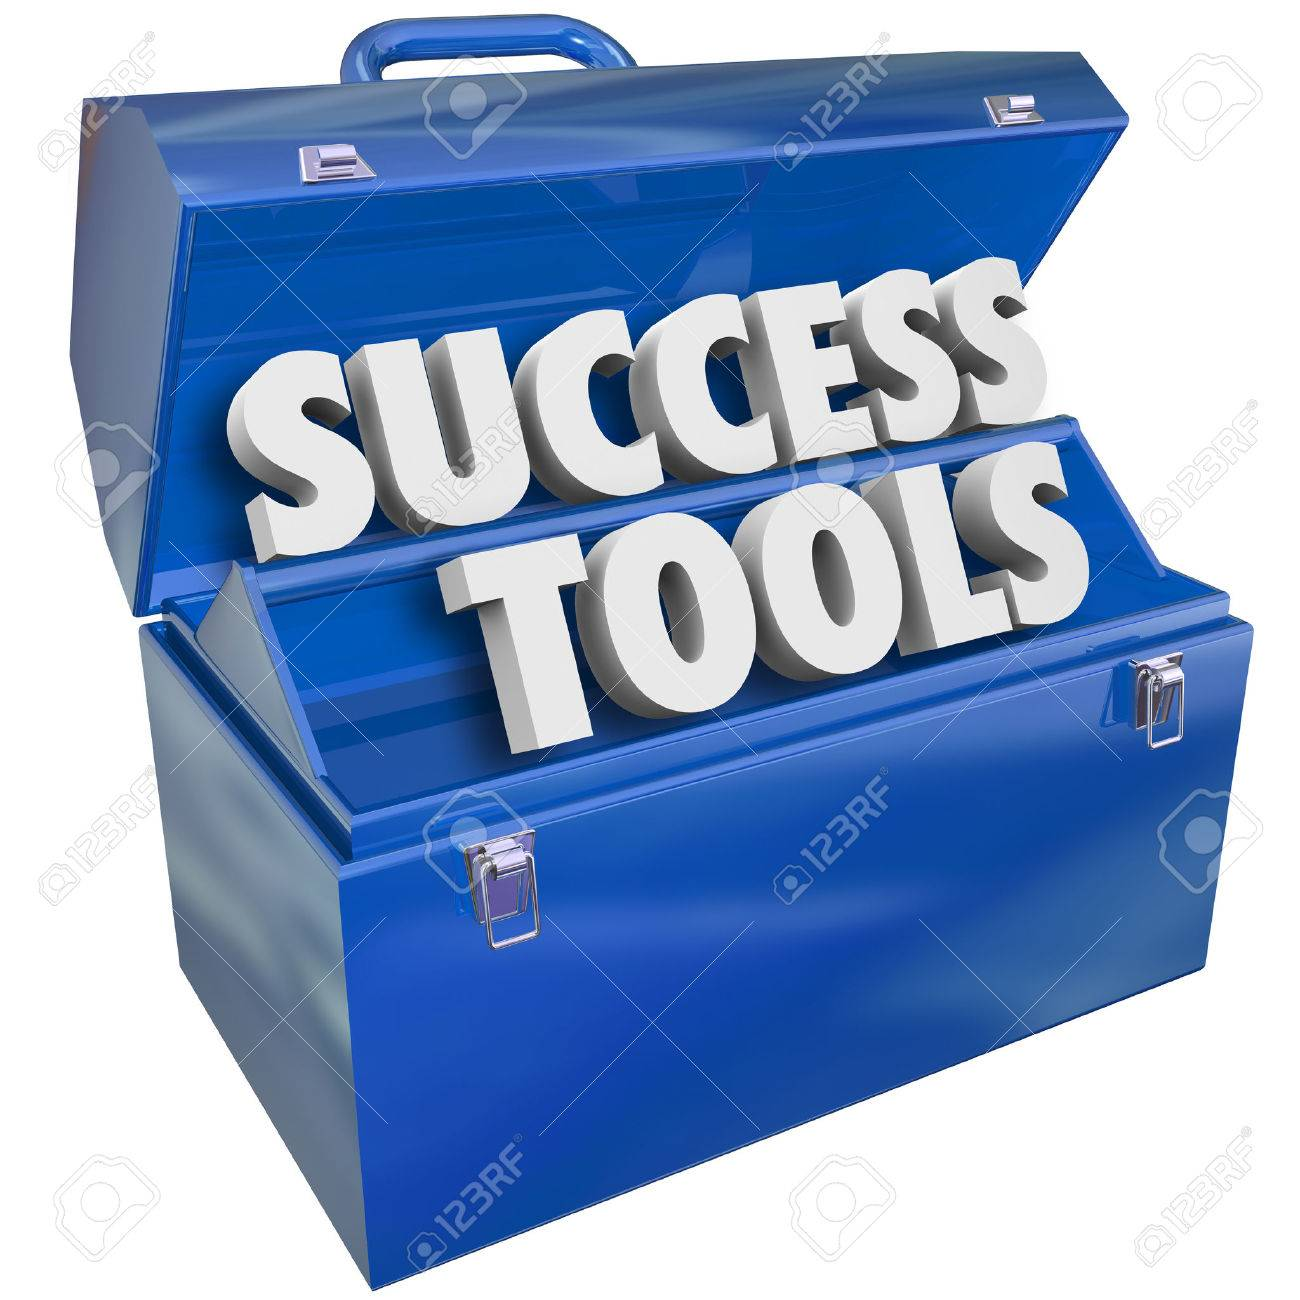 abilities stock photos pictures royalty abilities images abilities success tools words in a blue metal toolbox to illustrate learning new skills to